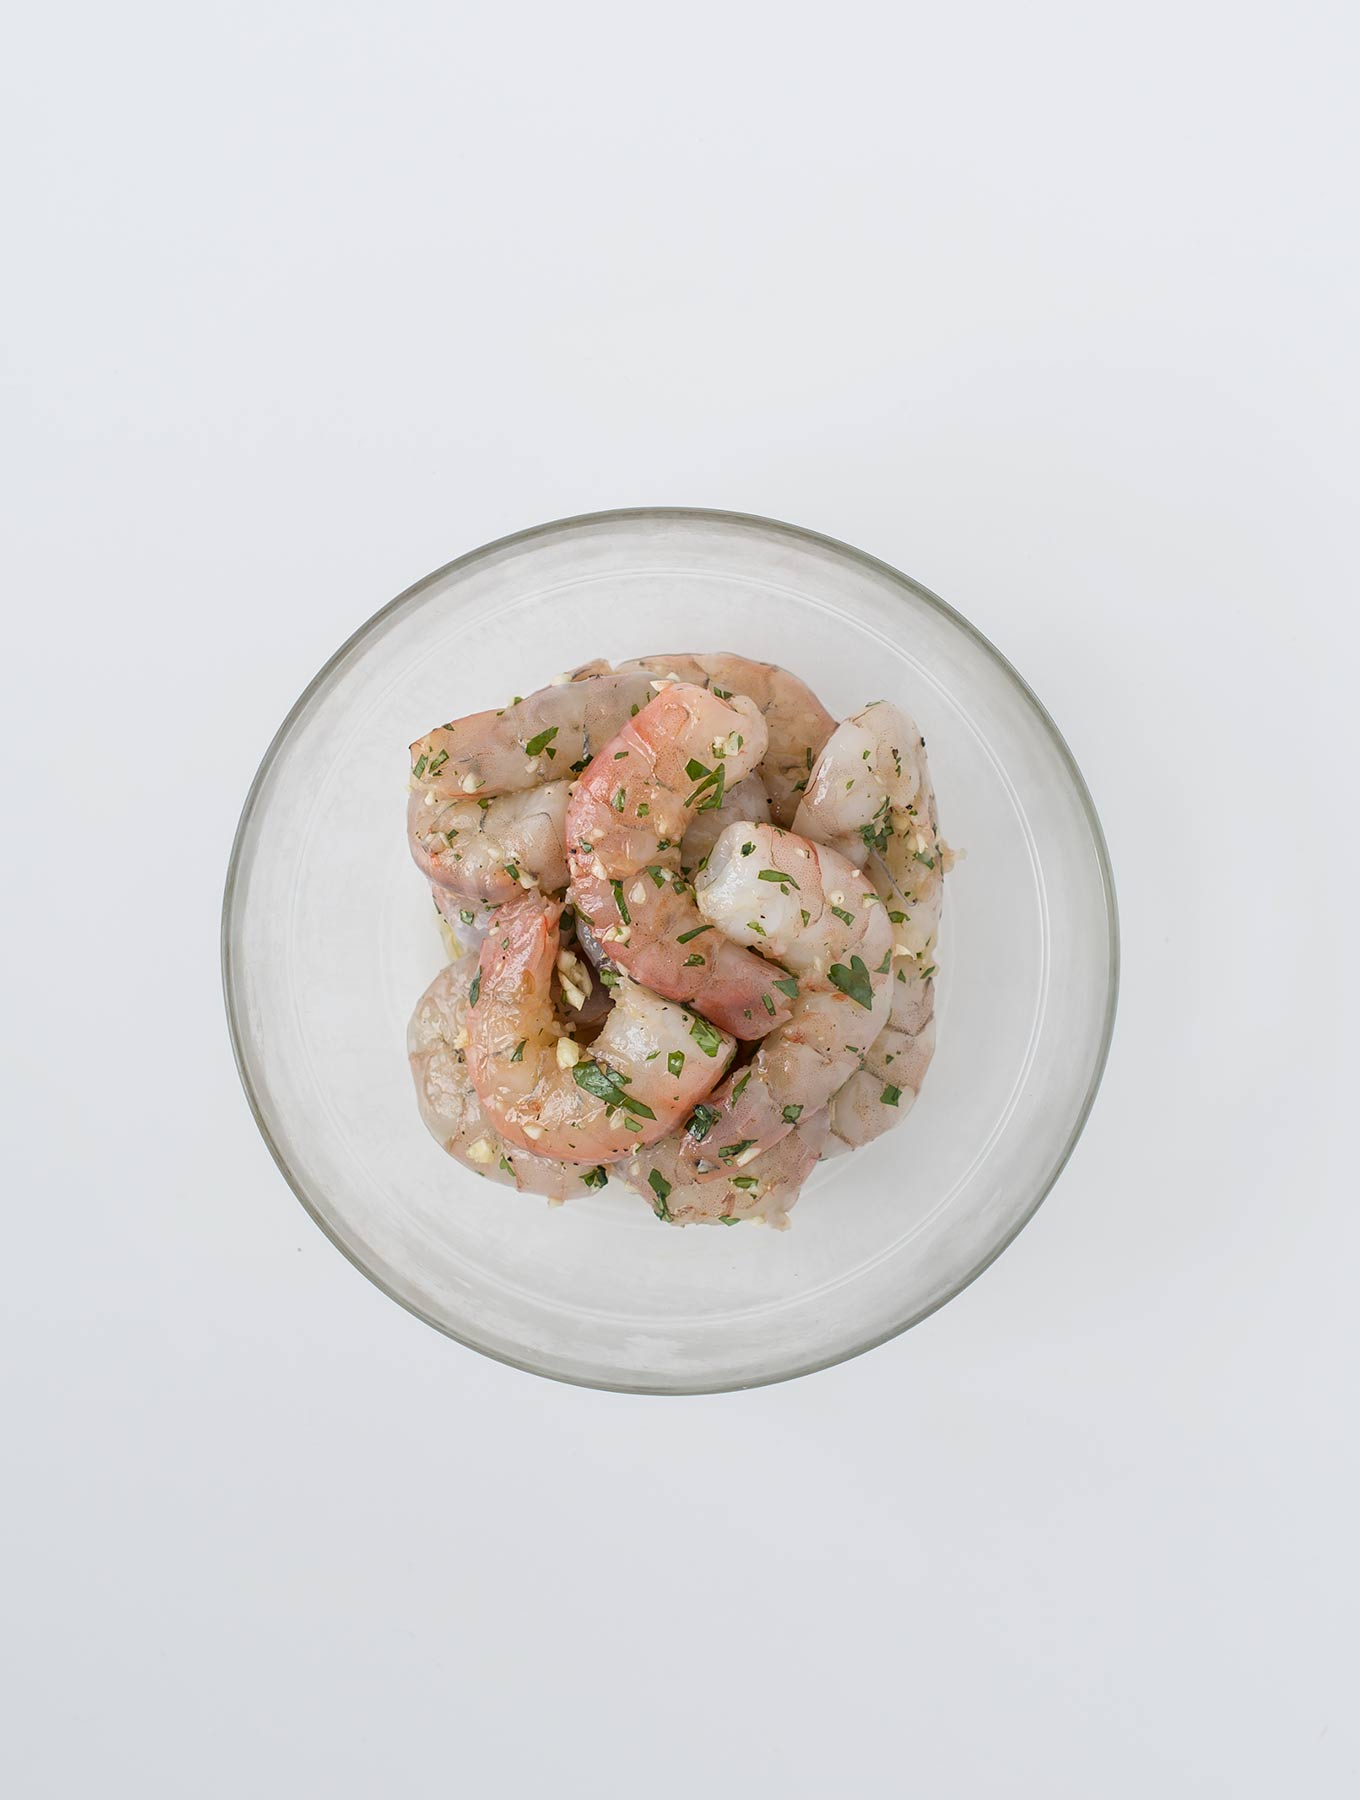 Bowl of raw shrimp in marinade